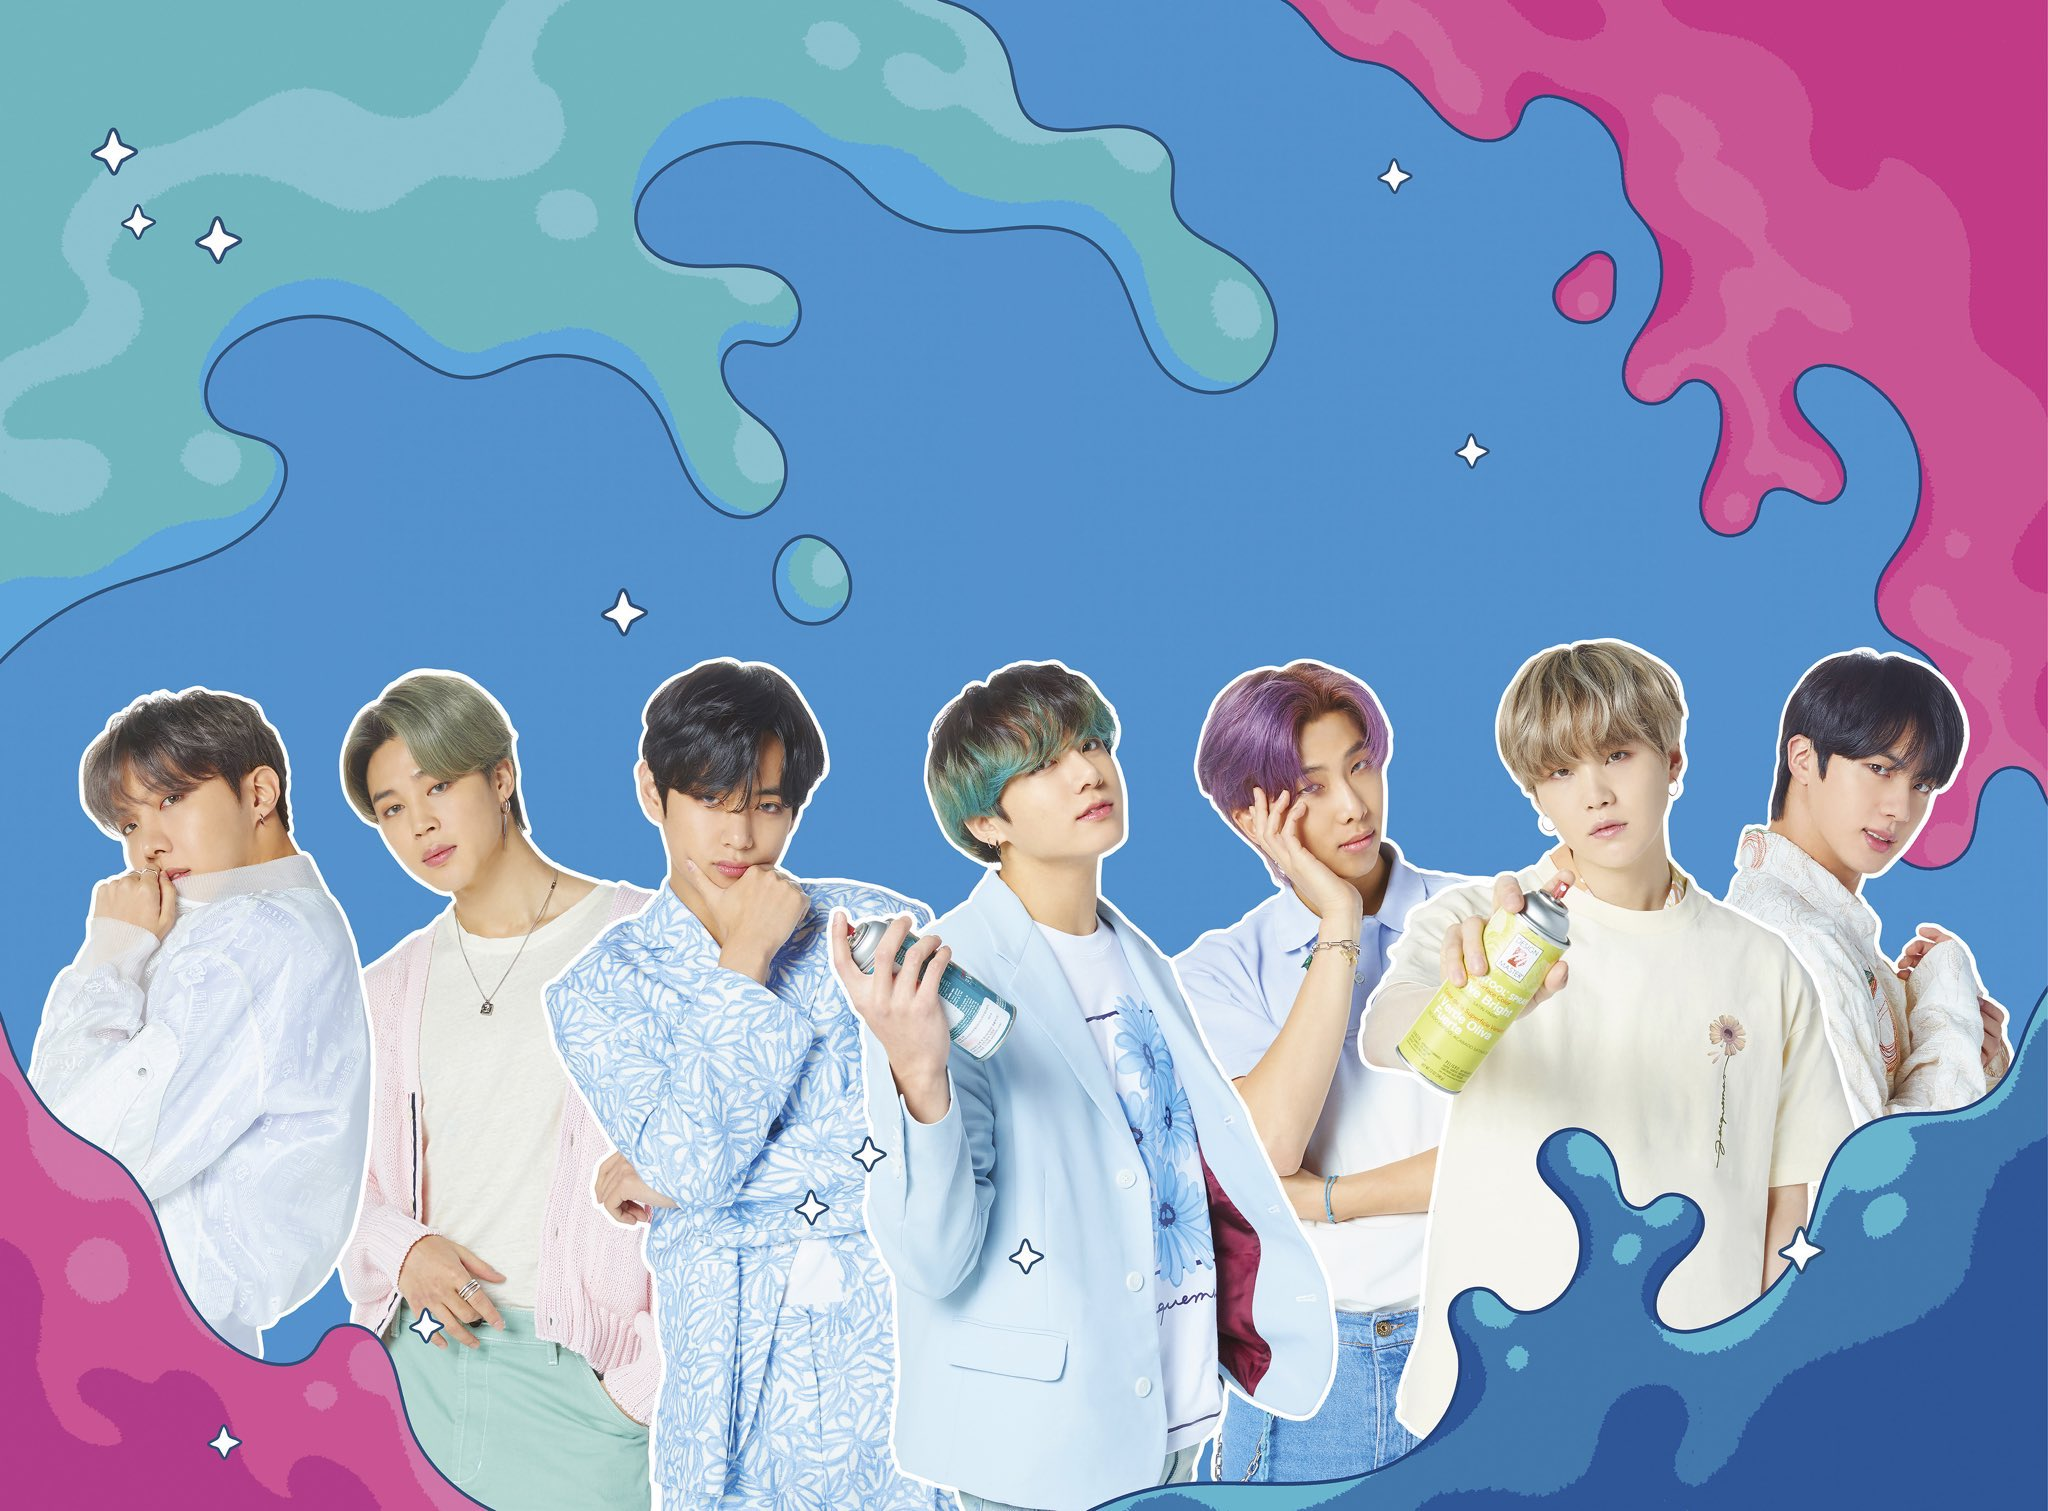 Drop your #ExaBFF #ExaARMY (@BTS_twt) votes below before voting ends! https://t.co/dFgR2rWYq2